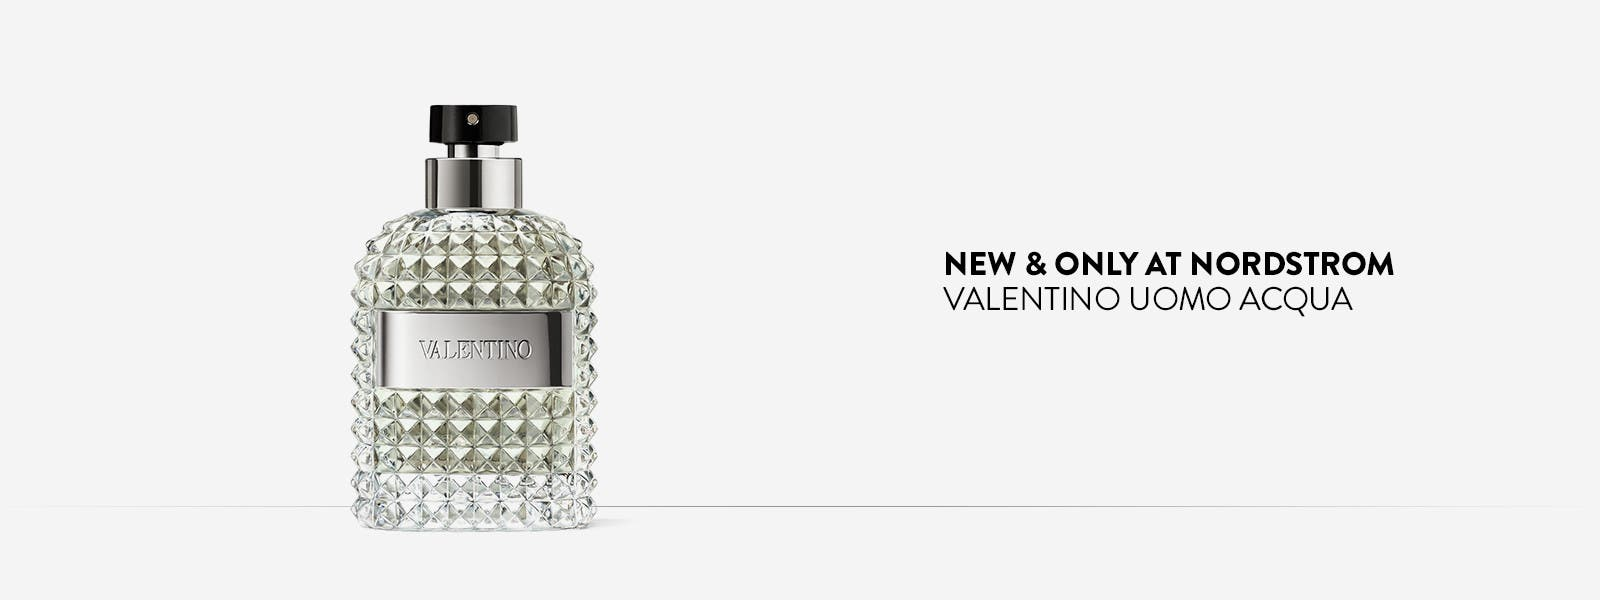 New and only at Nordstrom: Valentino Uomo Acqua.